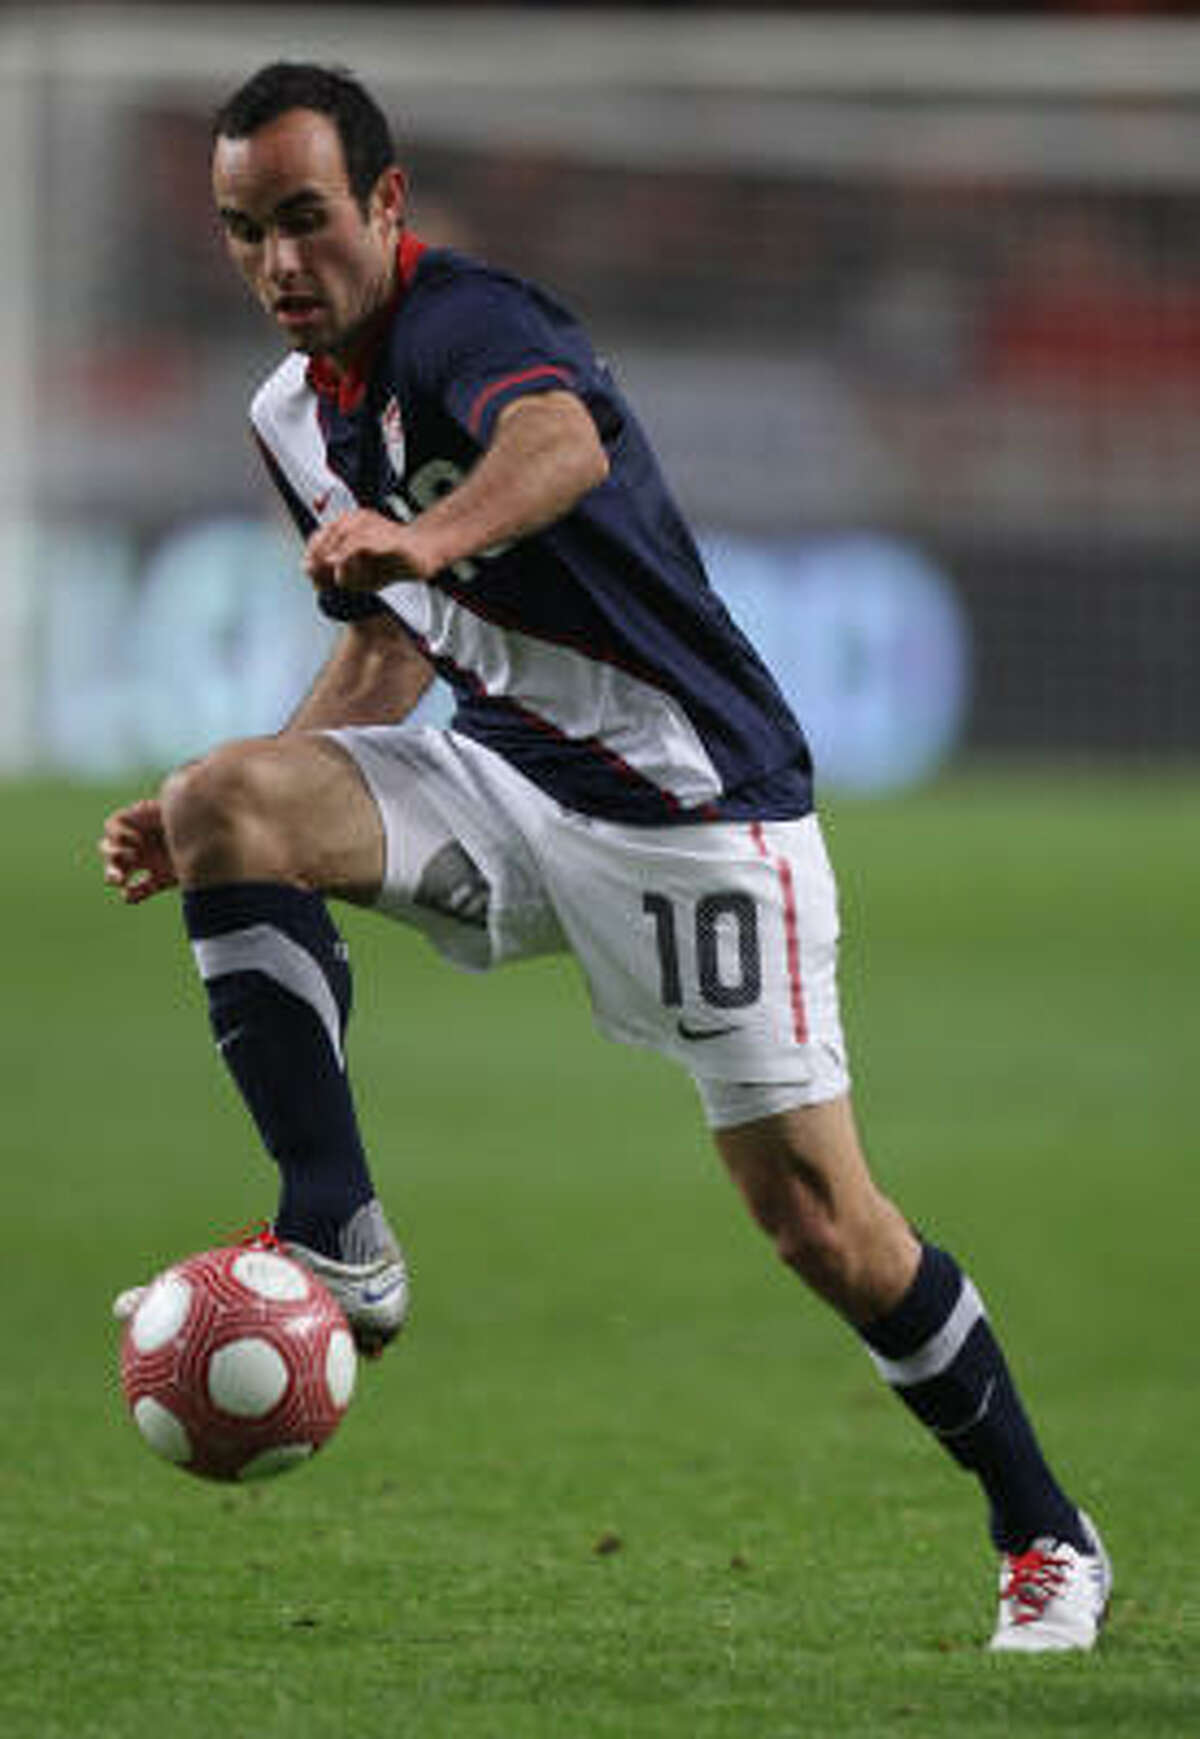 Landon Donovan of USA in action during the international friendly between Netherlands and the United States.